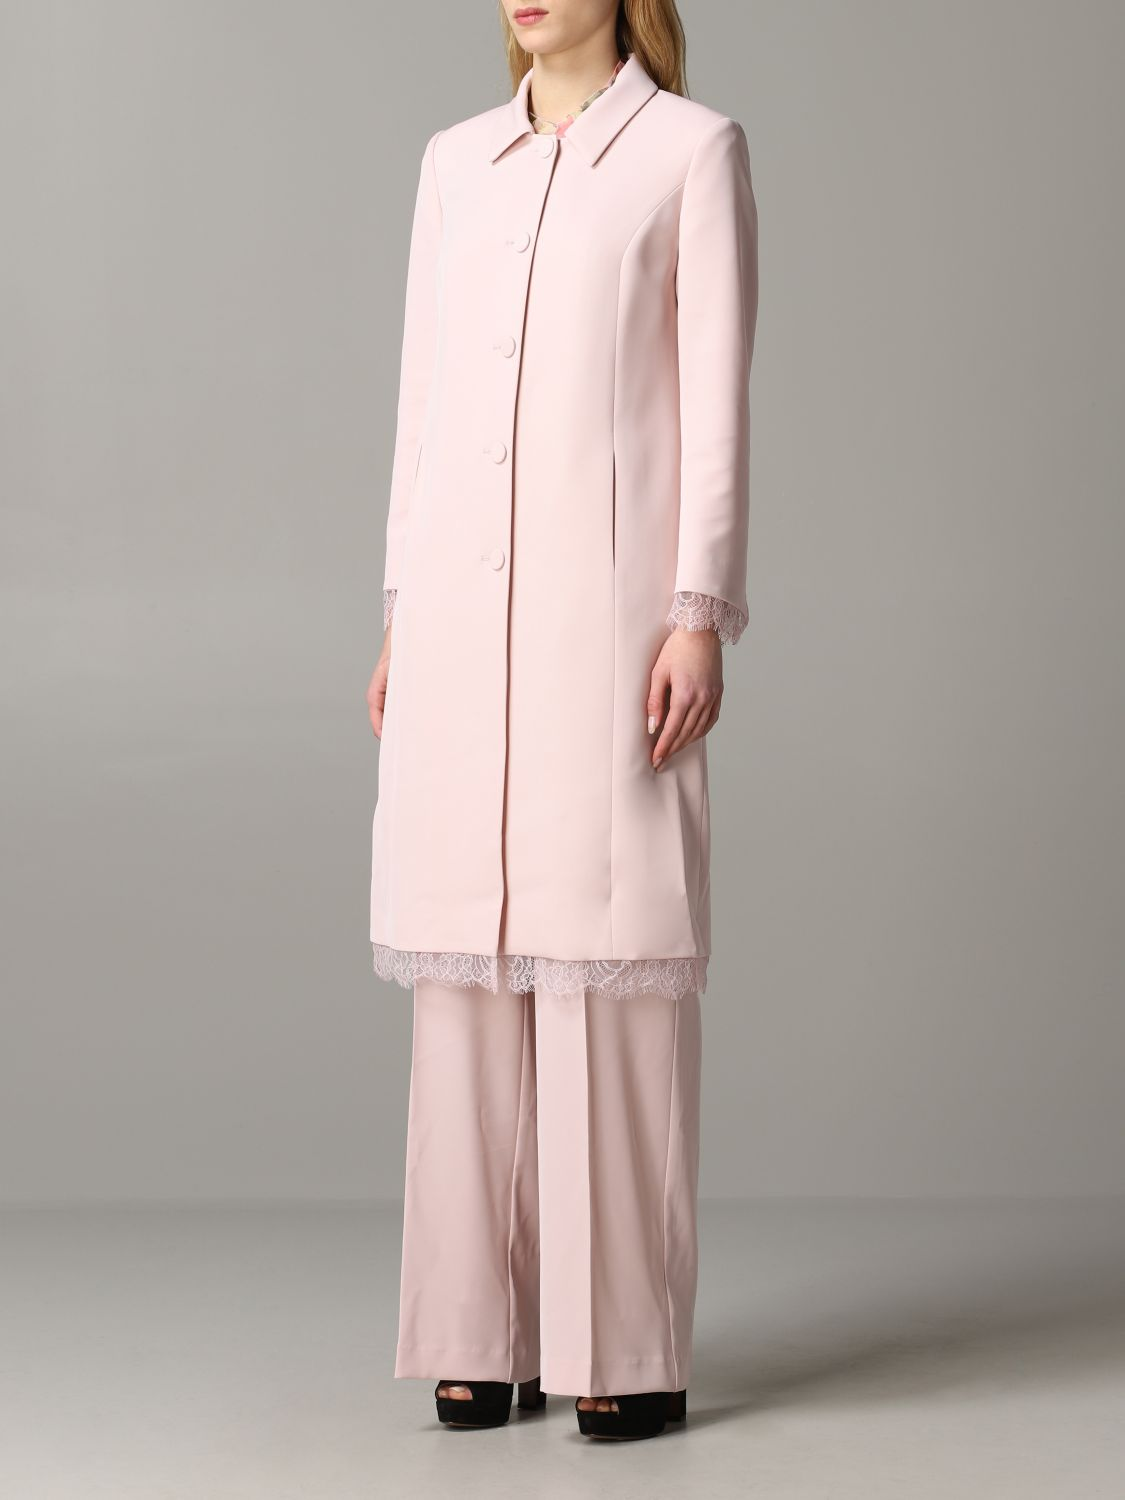 Coat Blumarine: Coat women Blumarine blush pink 4